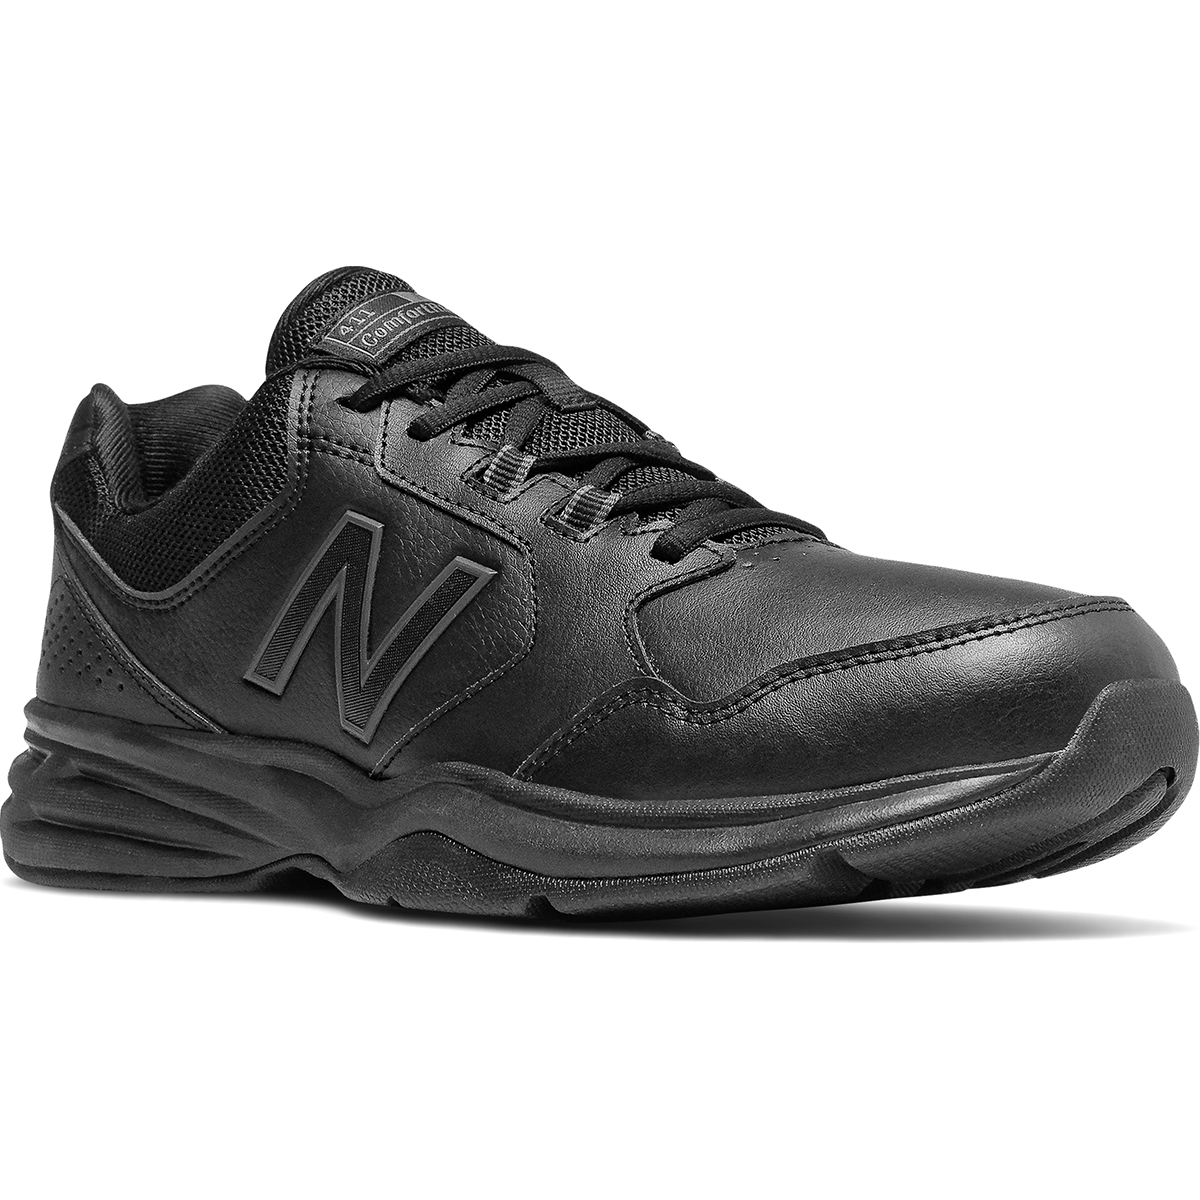 New Balance Men's 411 Walking Shoes - Black, 8.5